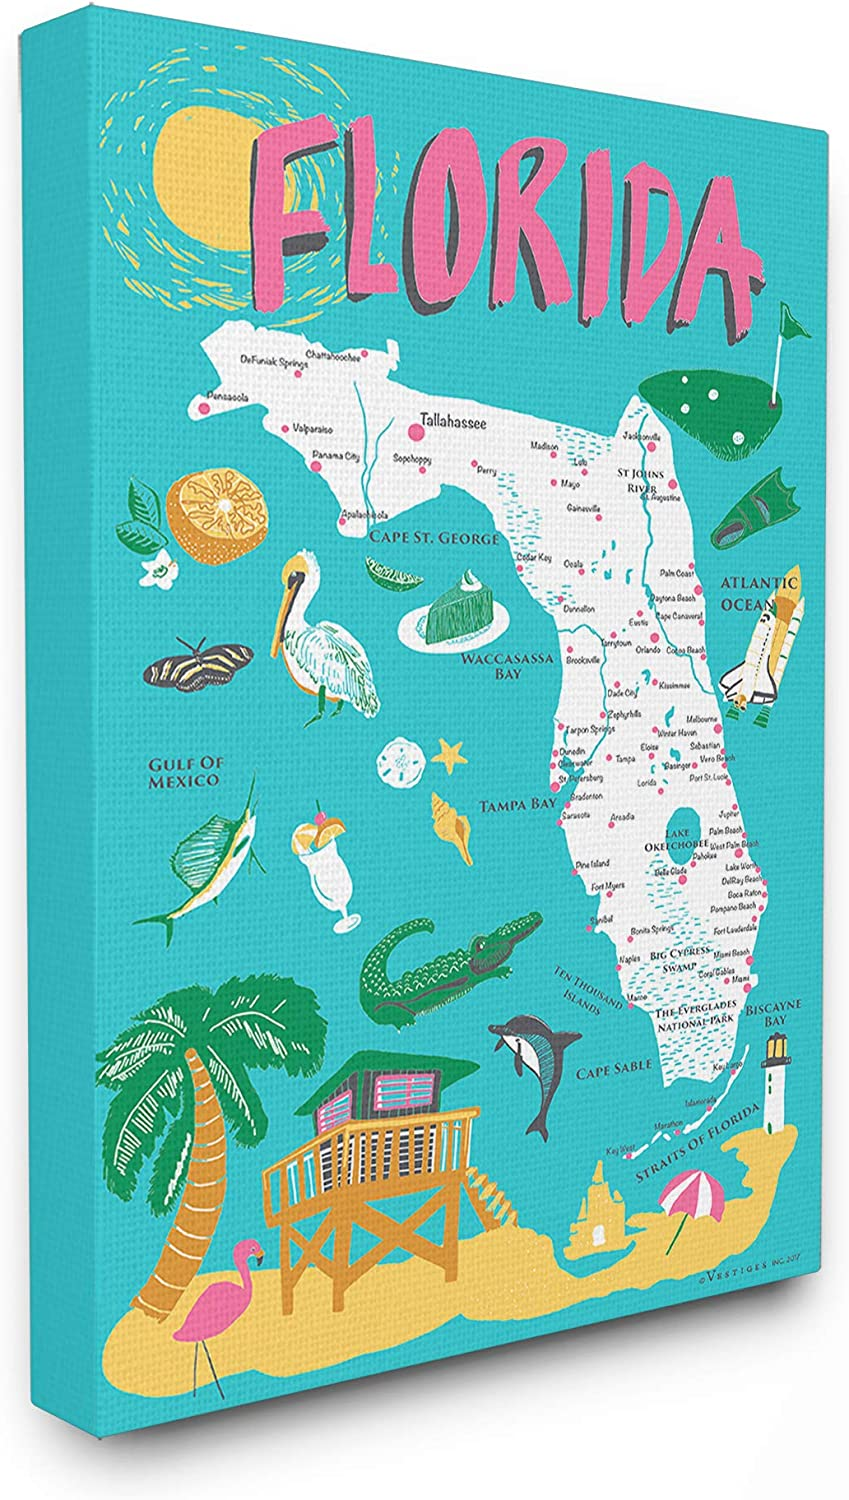 Stupell half Industries Florida Teal Blue Super beauty product restock quality top Scenic and Illustrated Pink